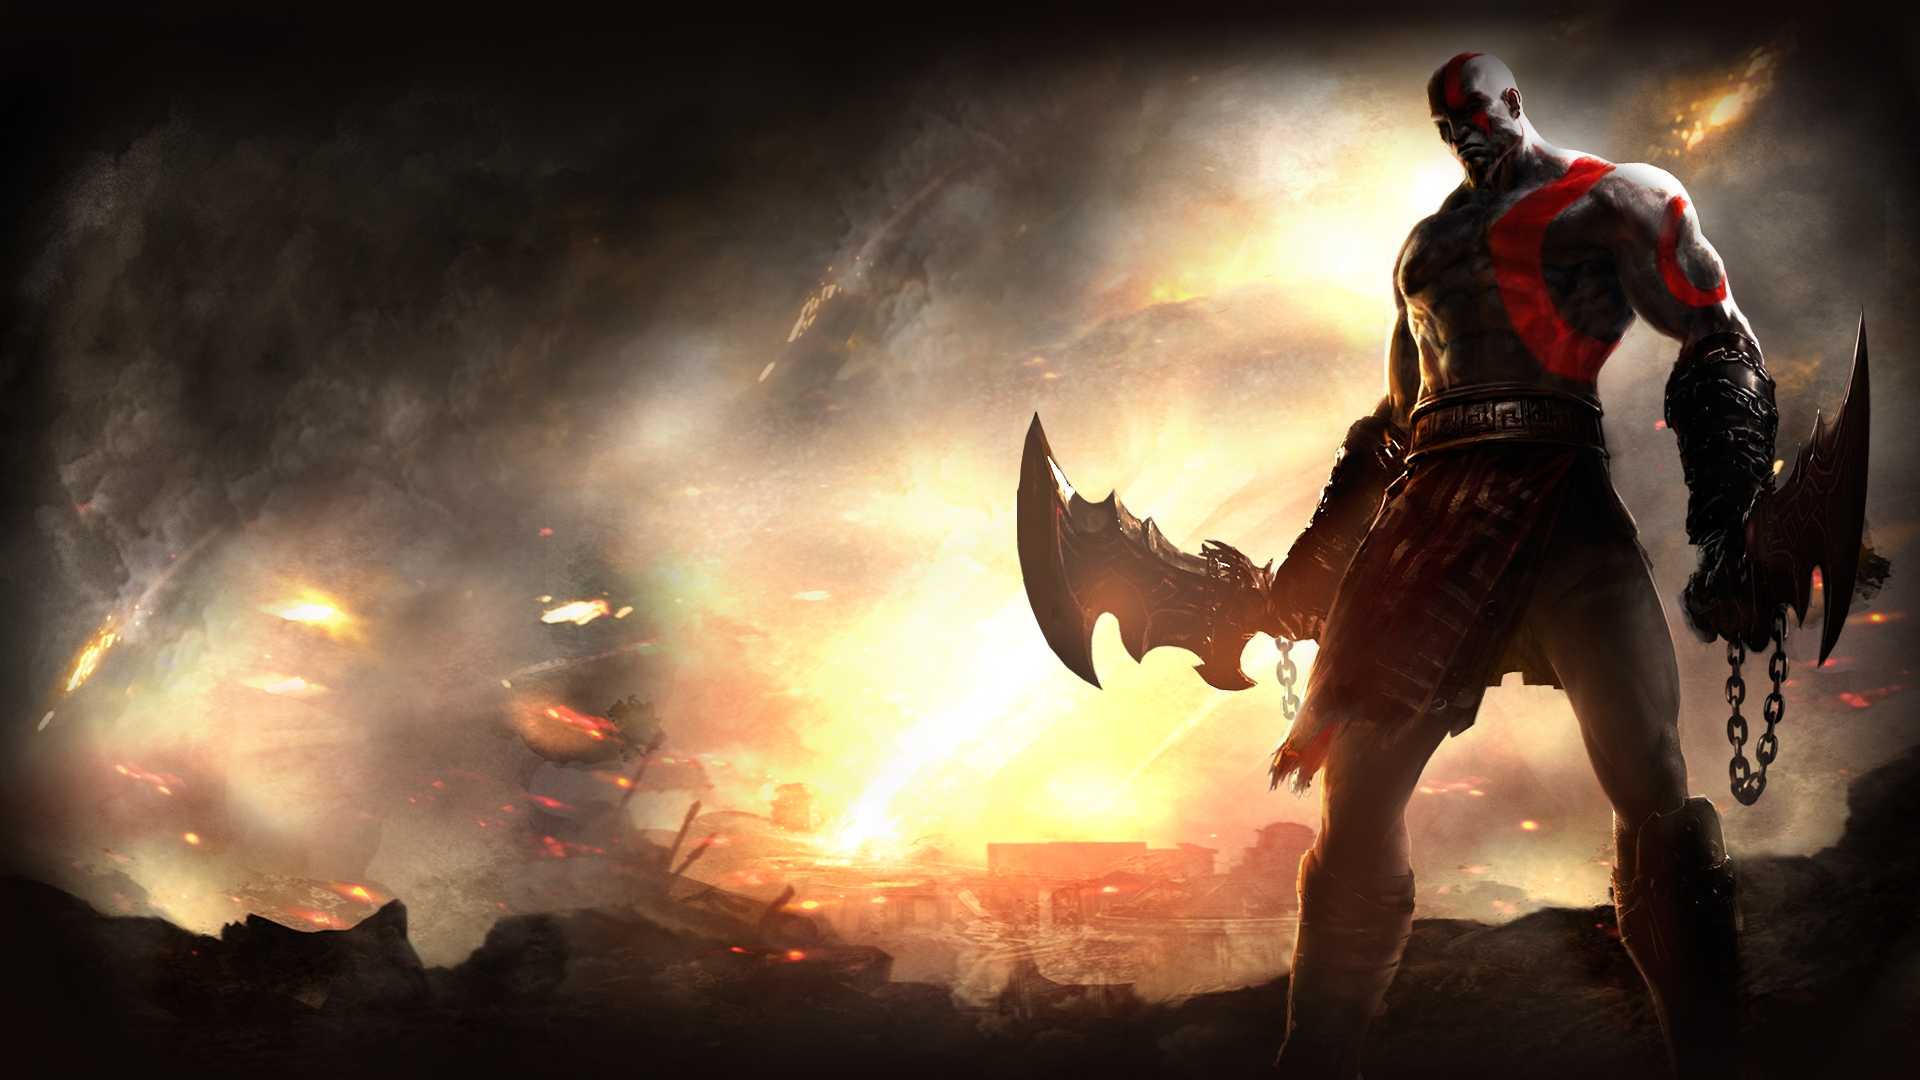 god of war full hd wallpaper and background image | 1920x1080 | id